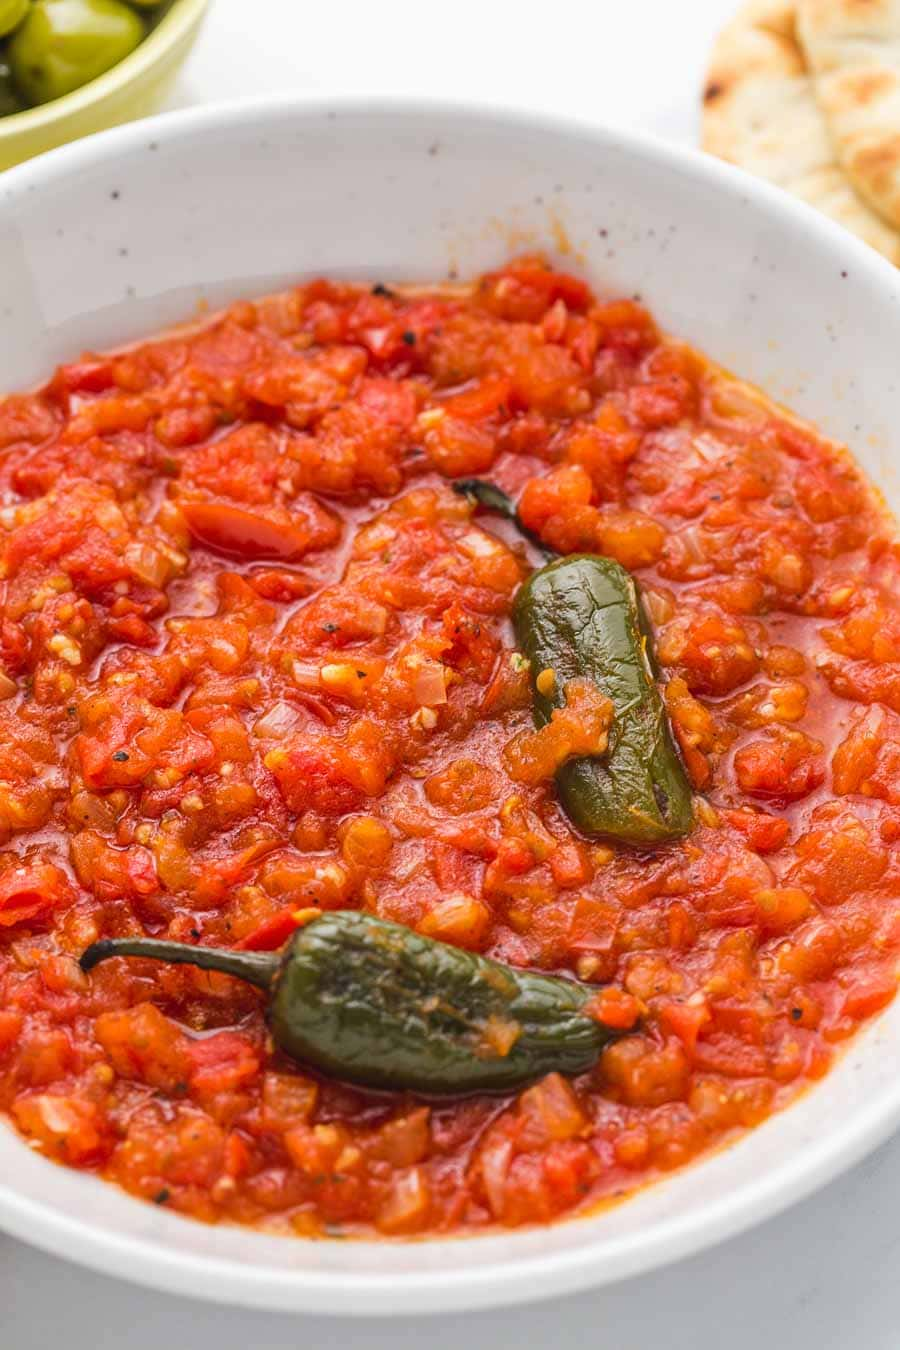 Galayet bandora Jordanian fried tomatoes with jalapeno peppers in a white bowl